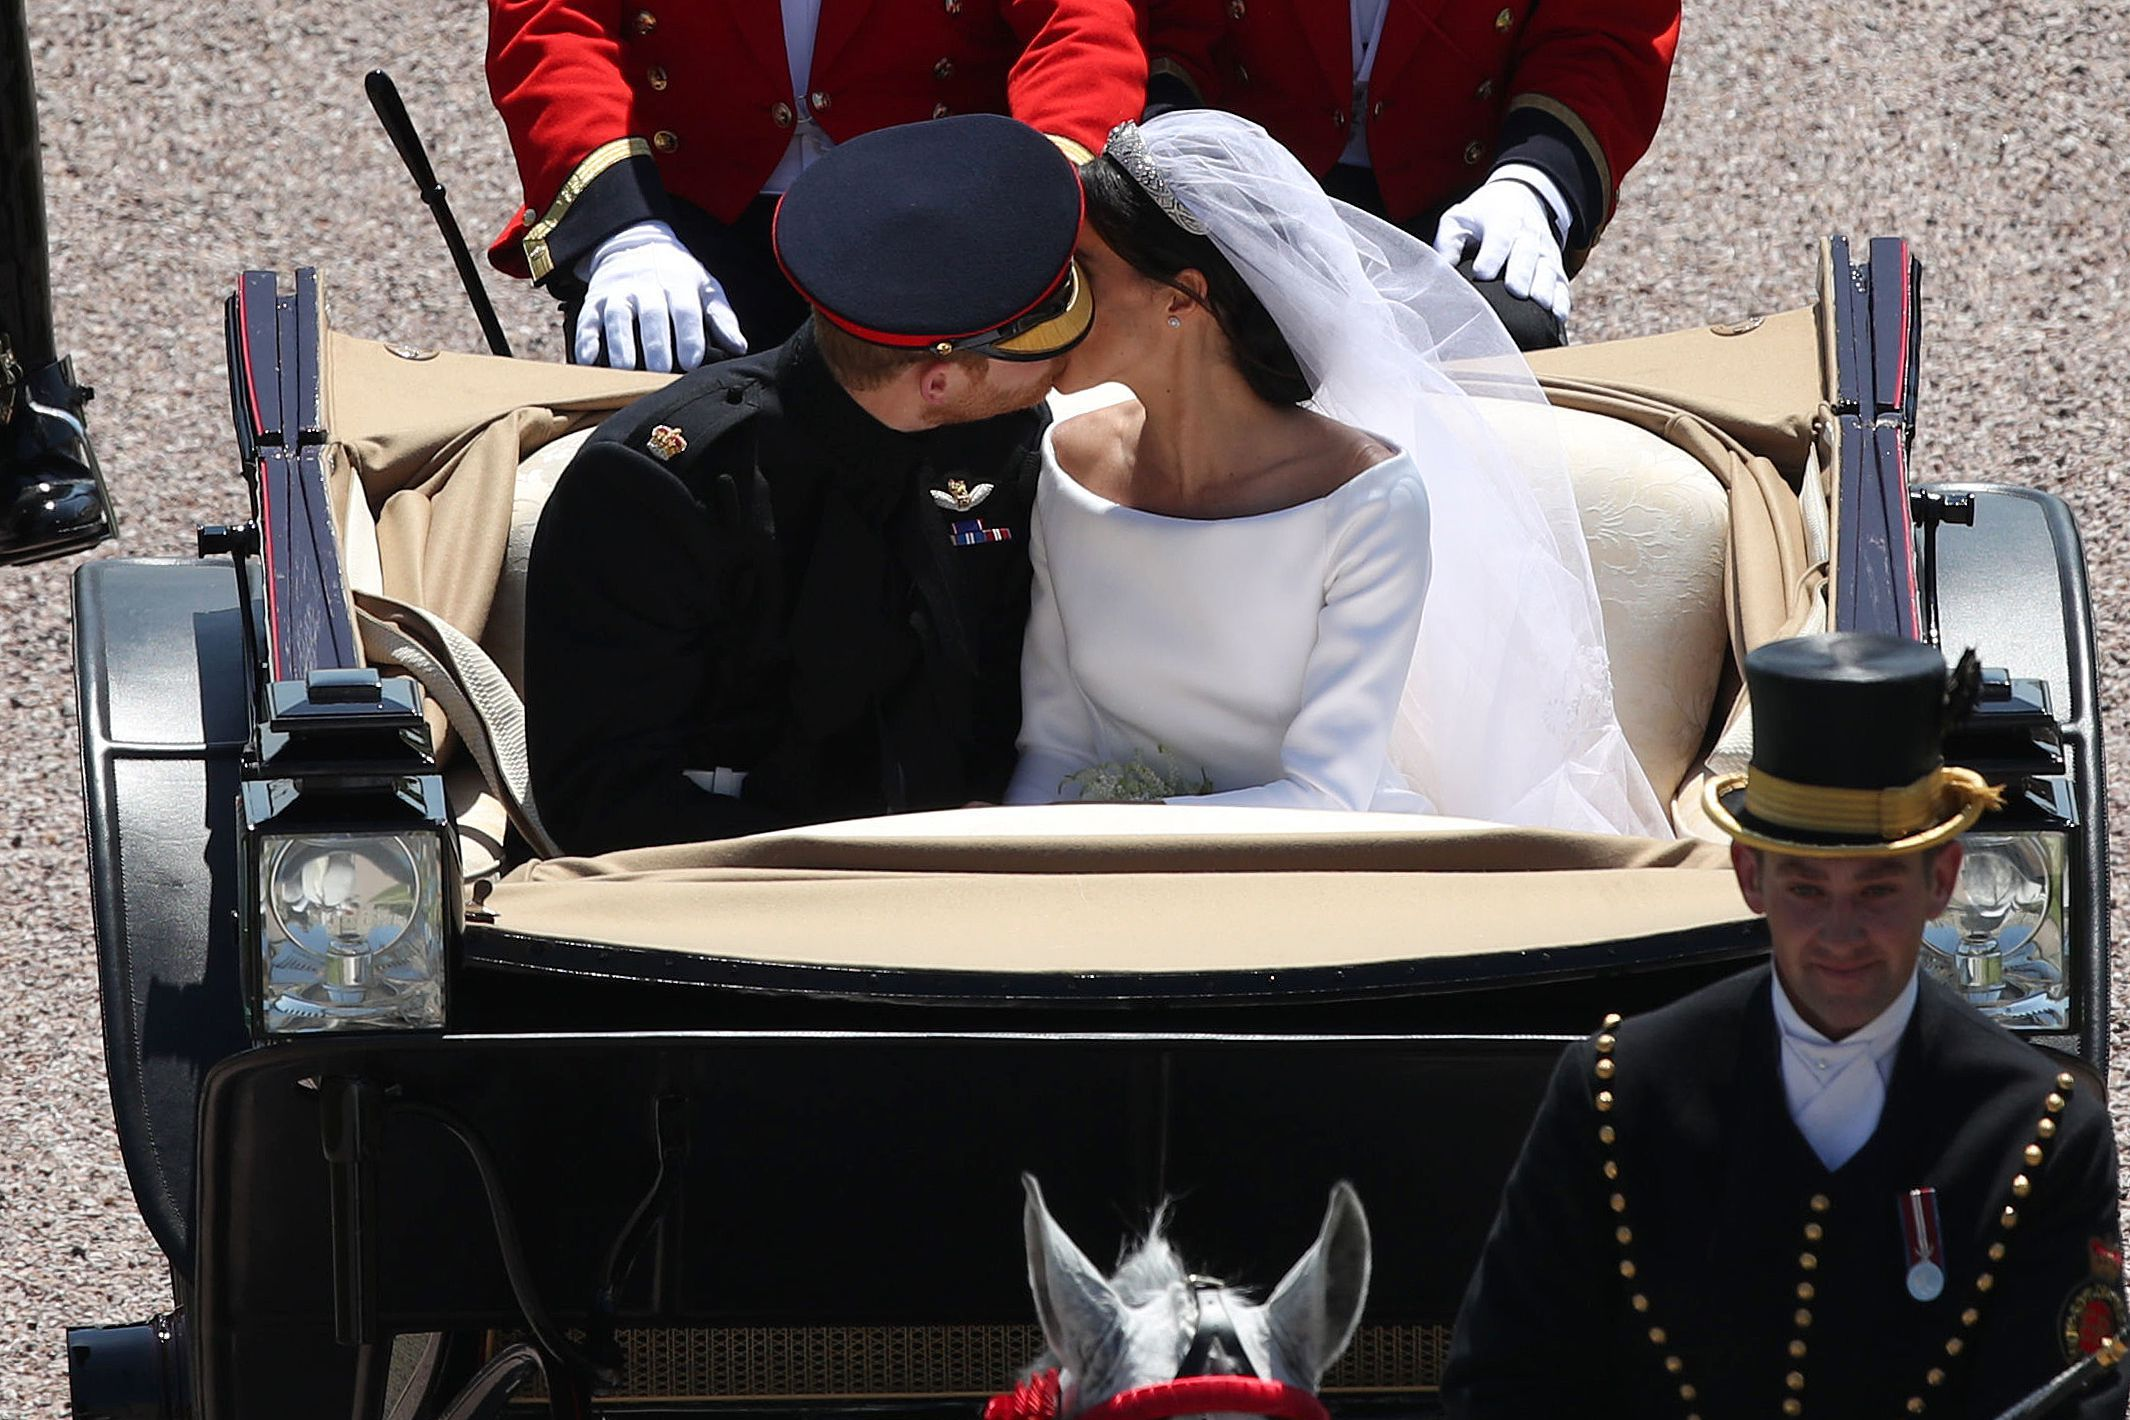 Though the royal family has traditionally been pretty reserved on the PDA front, the happy couple sneaked in a second public smooch during their post-ceremony procession. (Their first public kiss was shared, in traditional fashion, in front of St. George's Chapel immediately following the ceremony.)